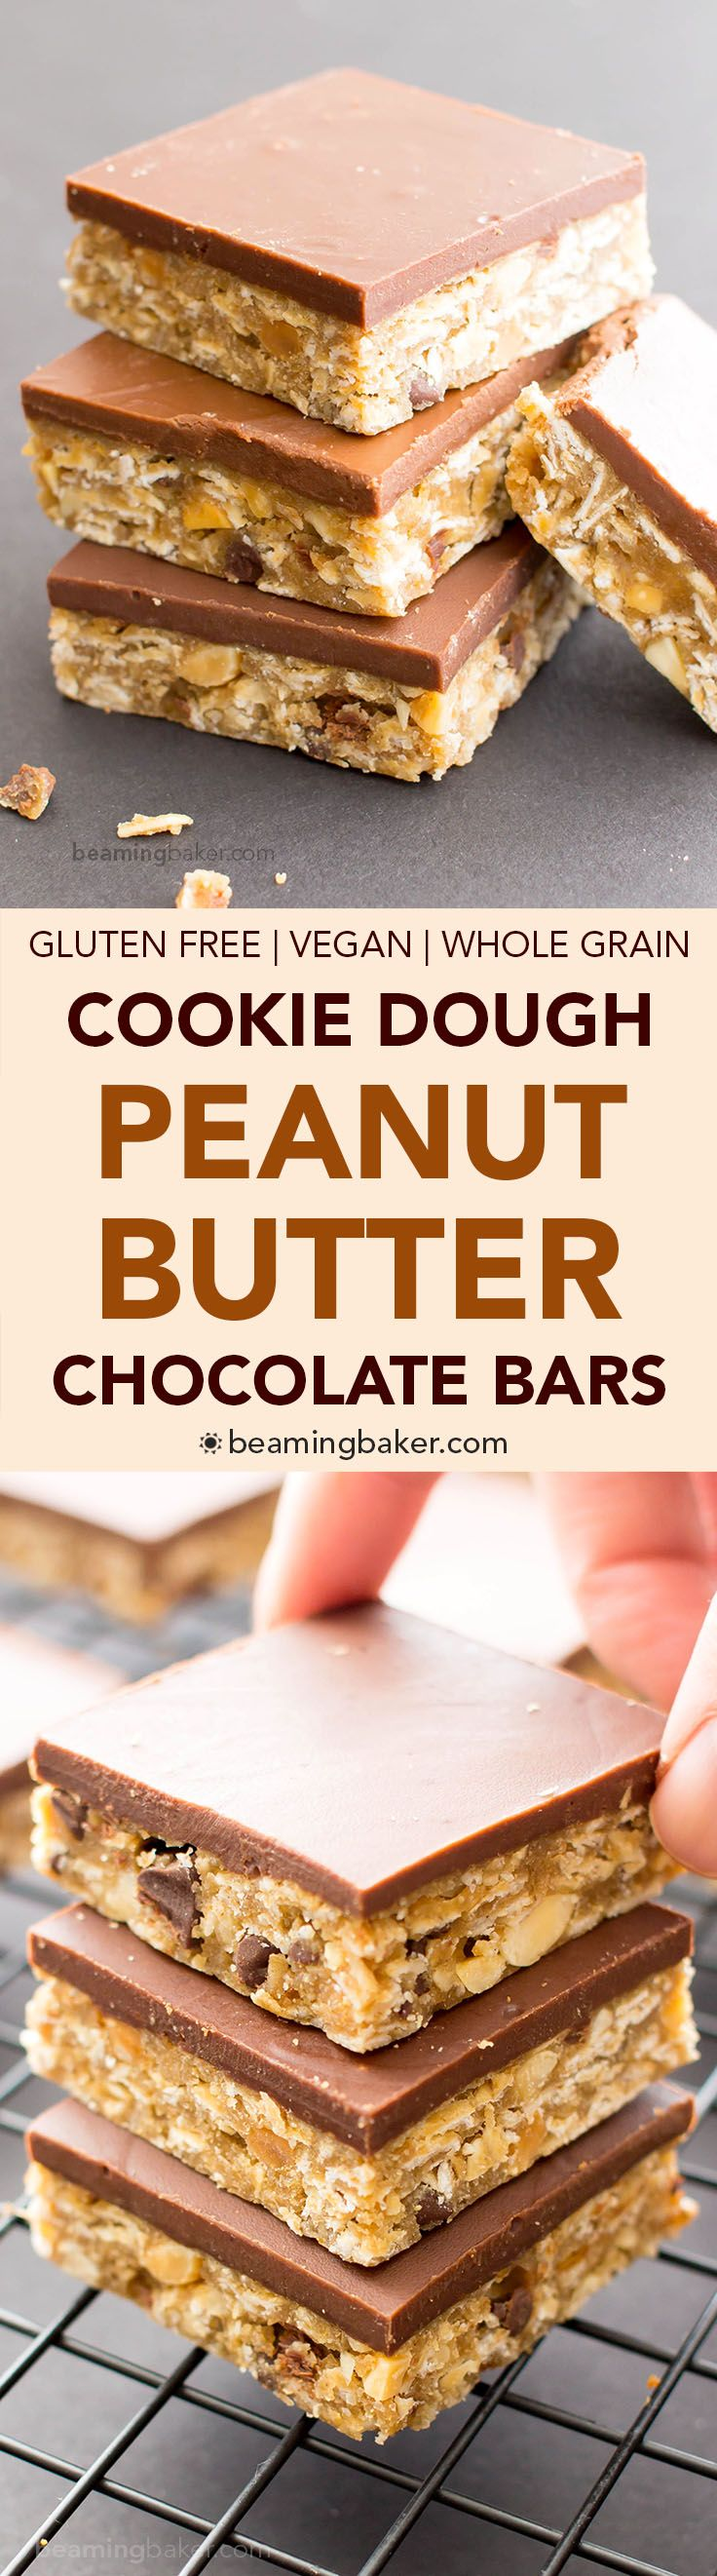 No Bake Vegan Chocolate Peanut Butter Oatmeal Cookie Dough Bars #GlutenFree #DairyFree | BeamingBaker.com